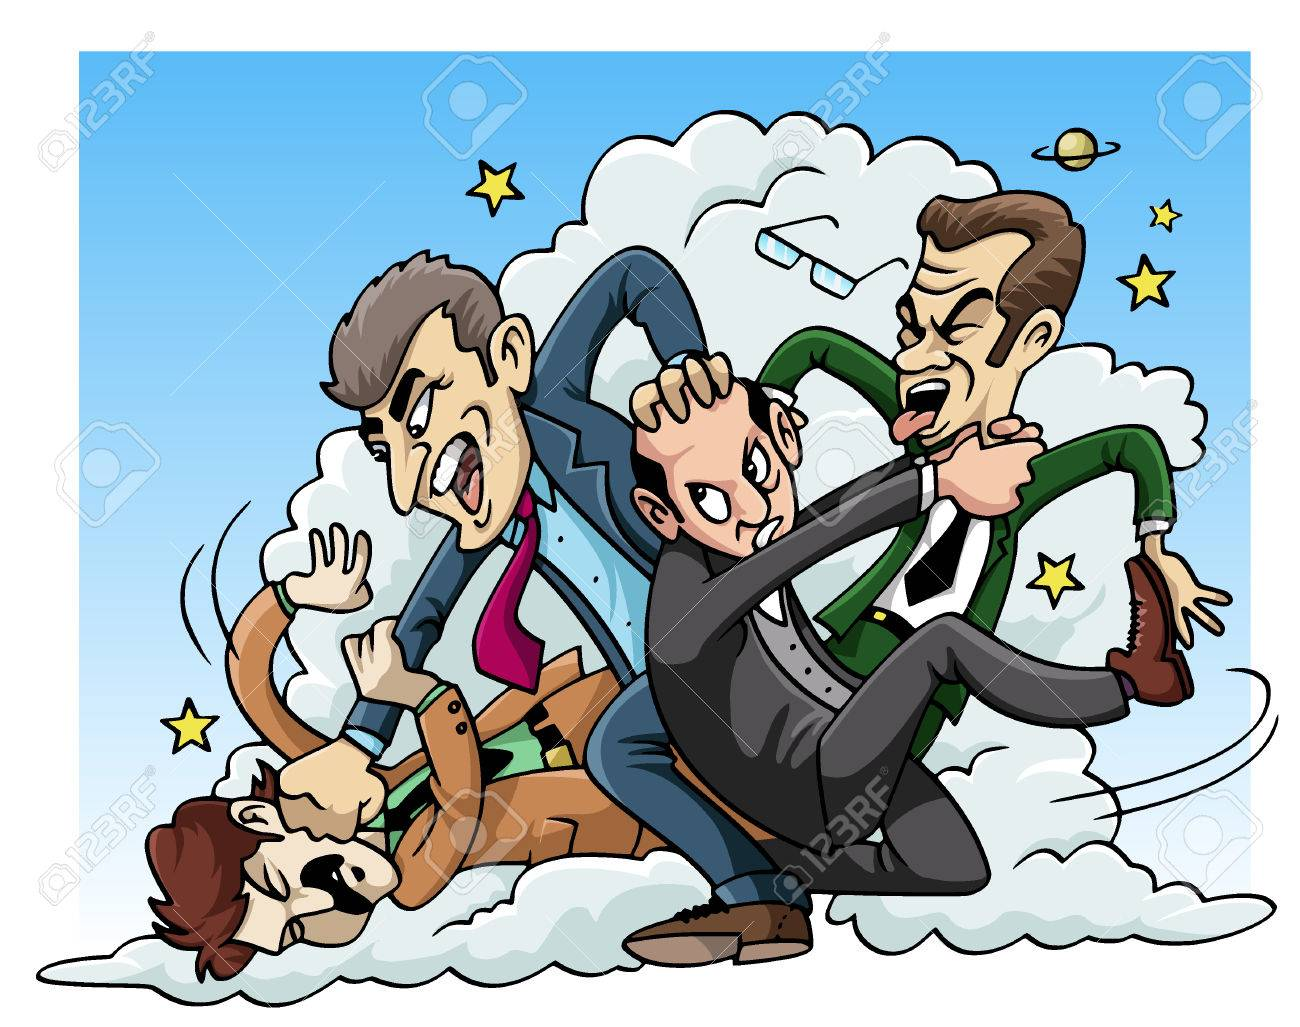 Cartoon Illustration Four Men Fighting Royalty Free Cliparts Vectors And Stock Illustration Image 35697301